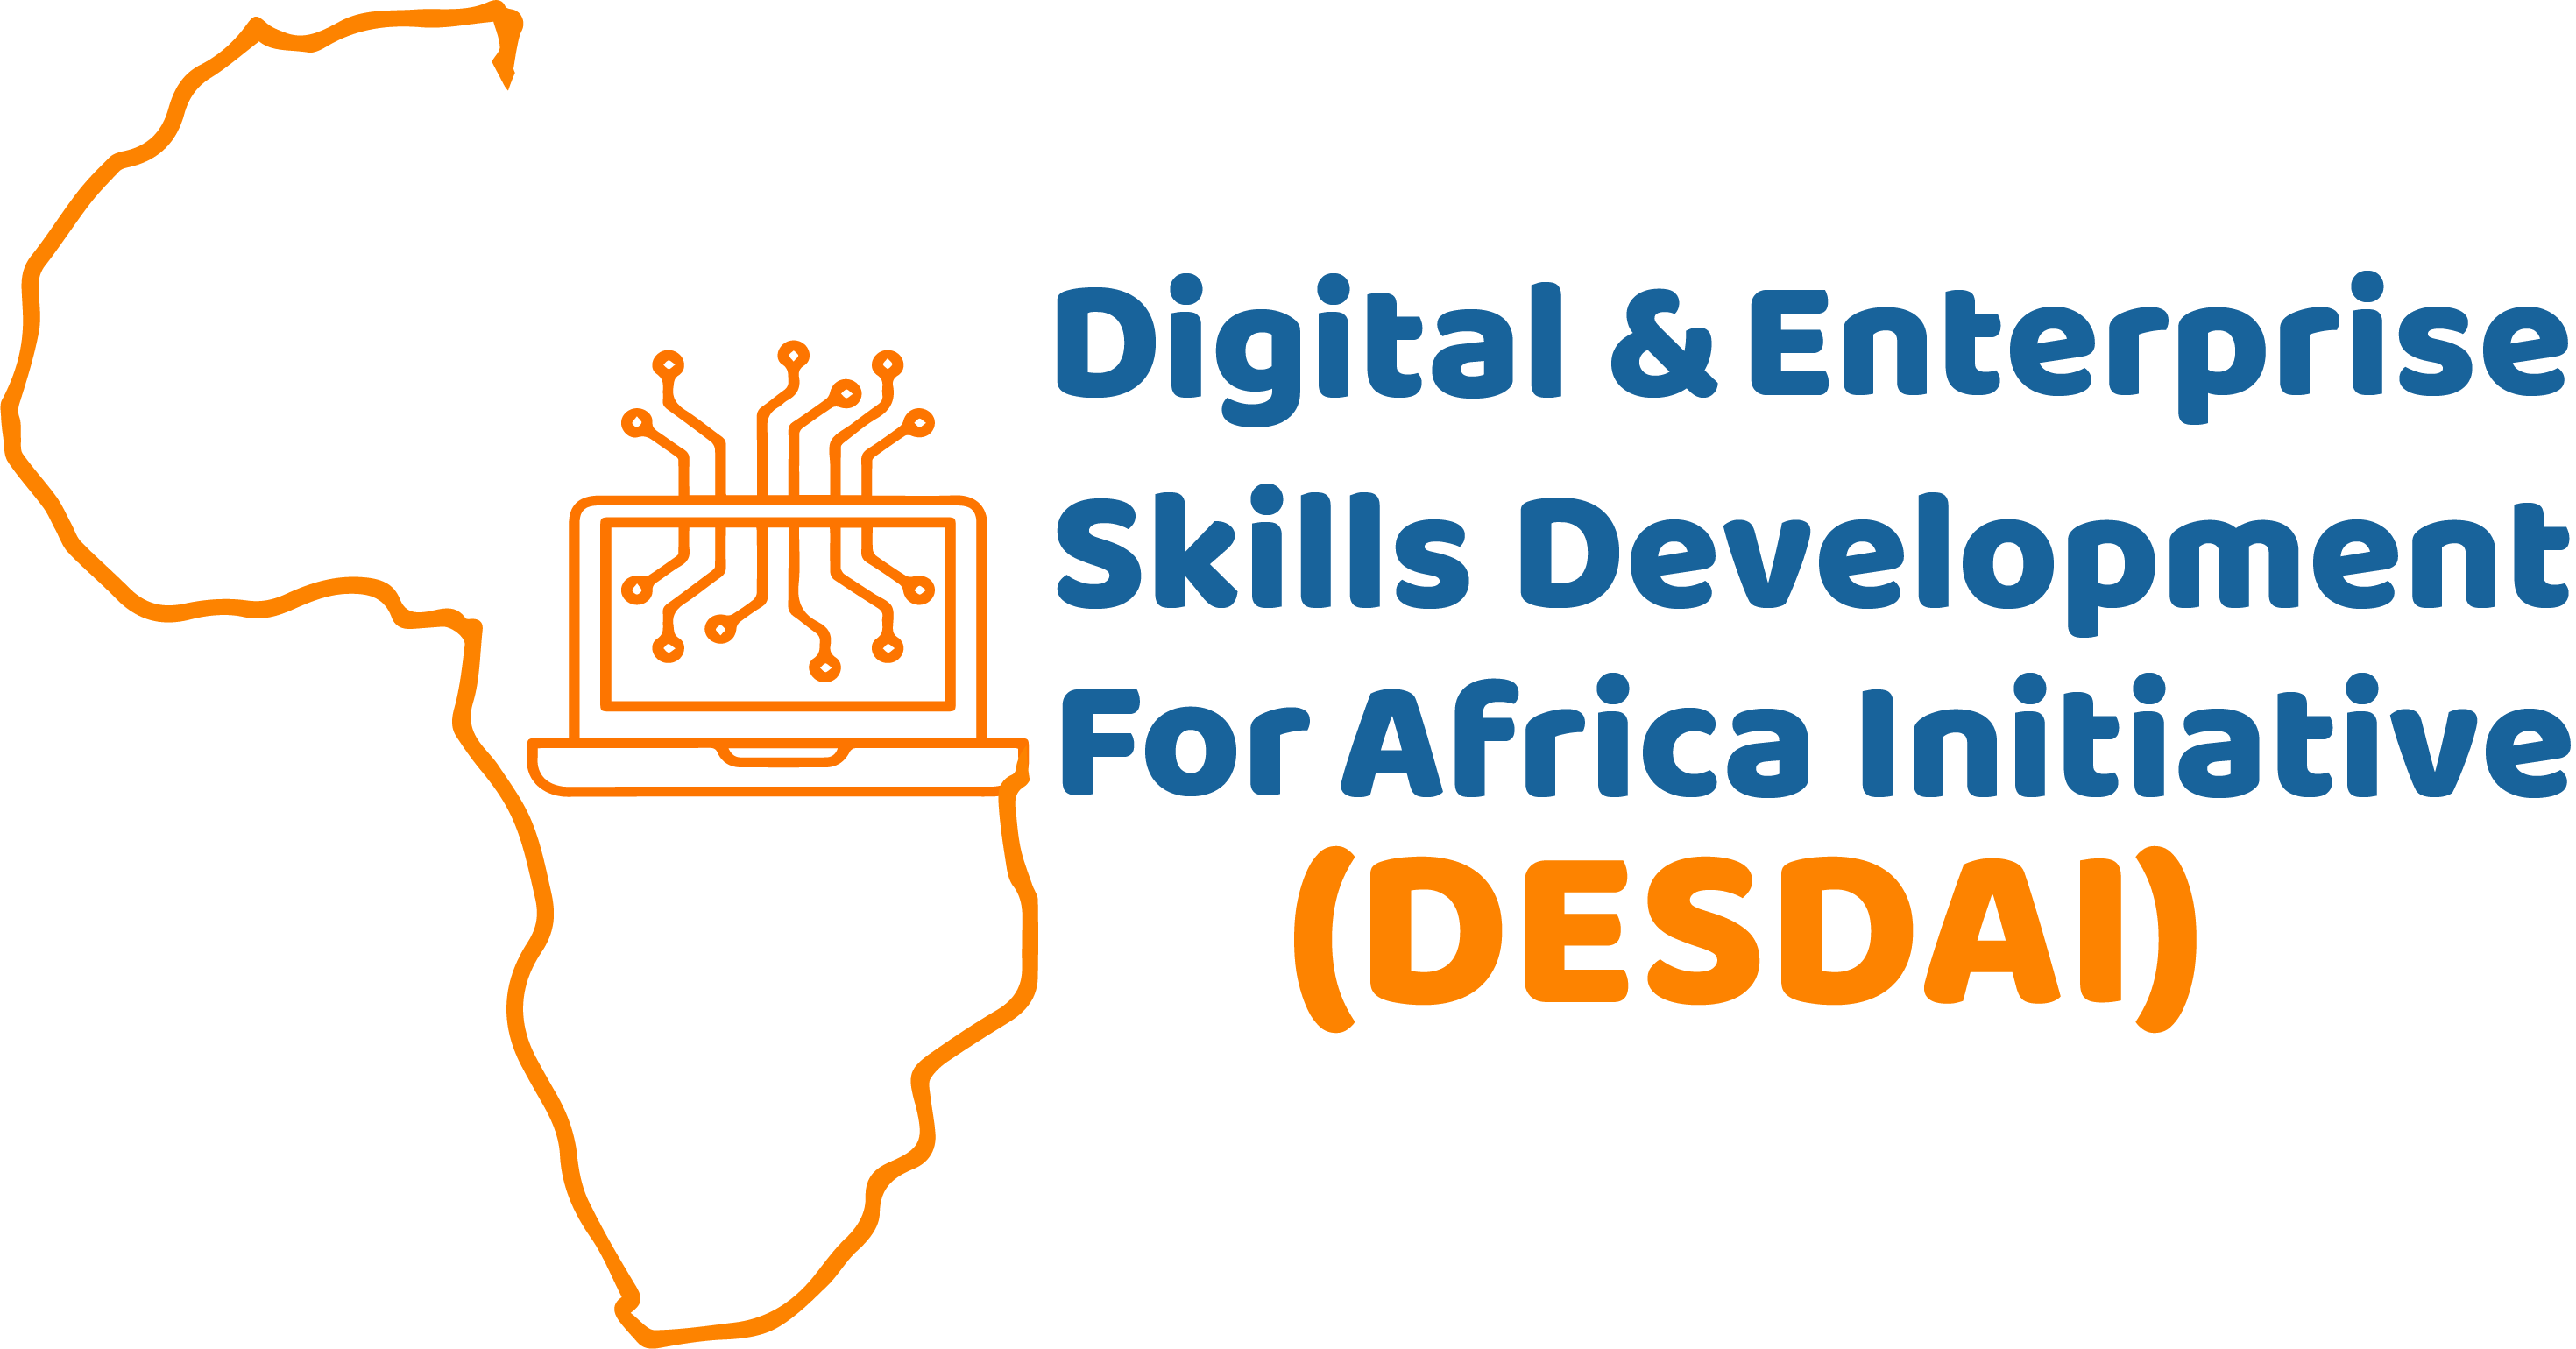 Digital and Enterprise Skills Development for Africa Initiative (DESDAI)